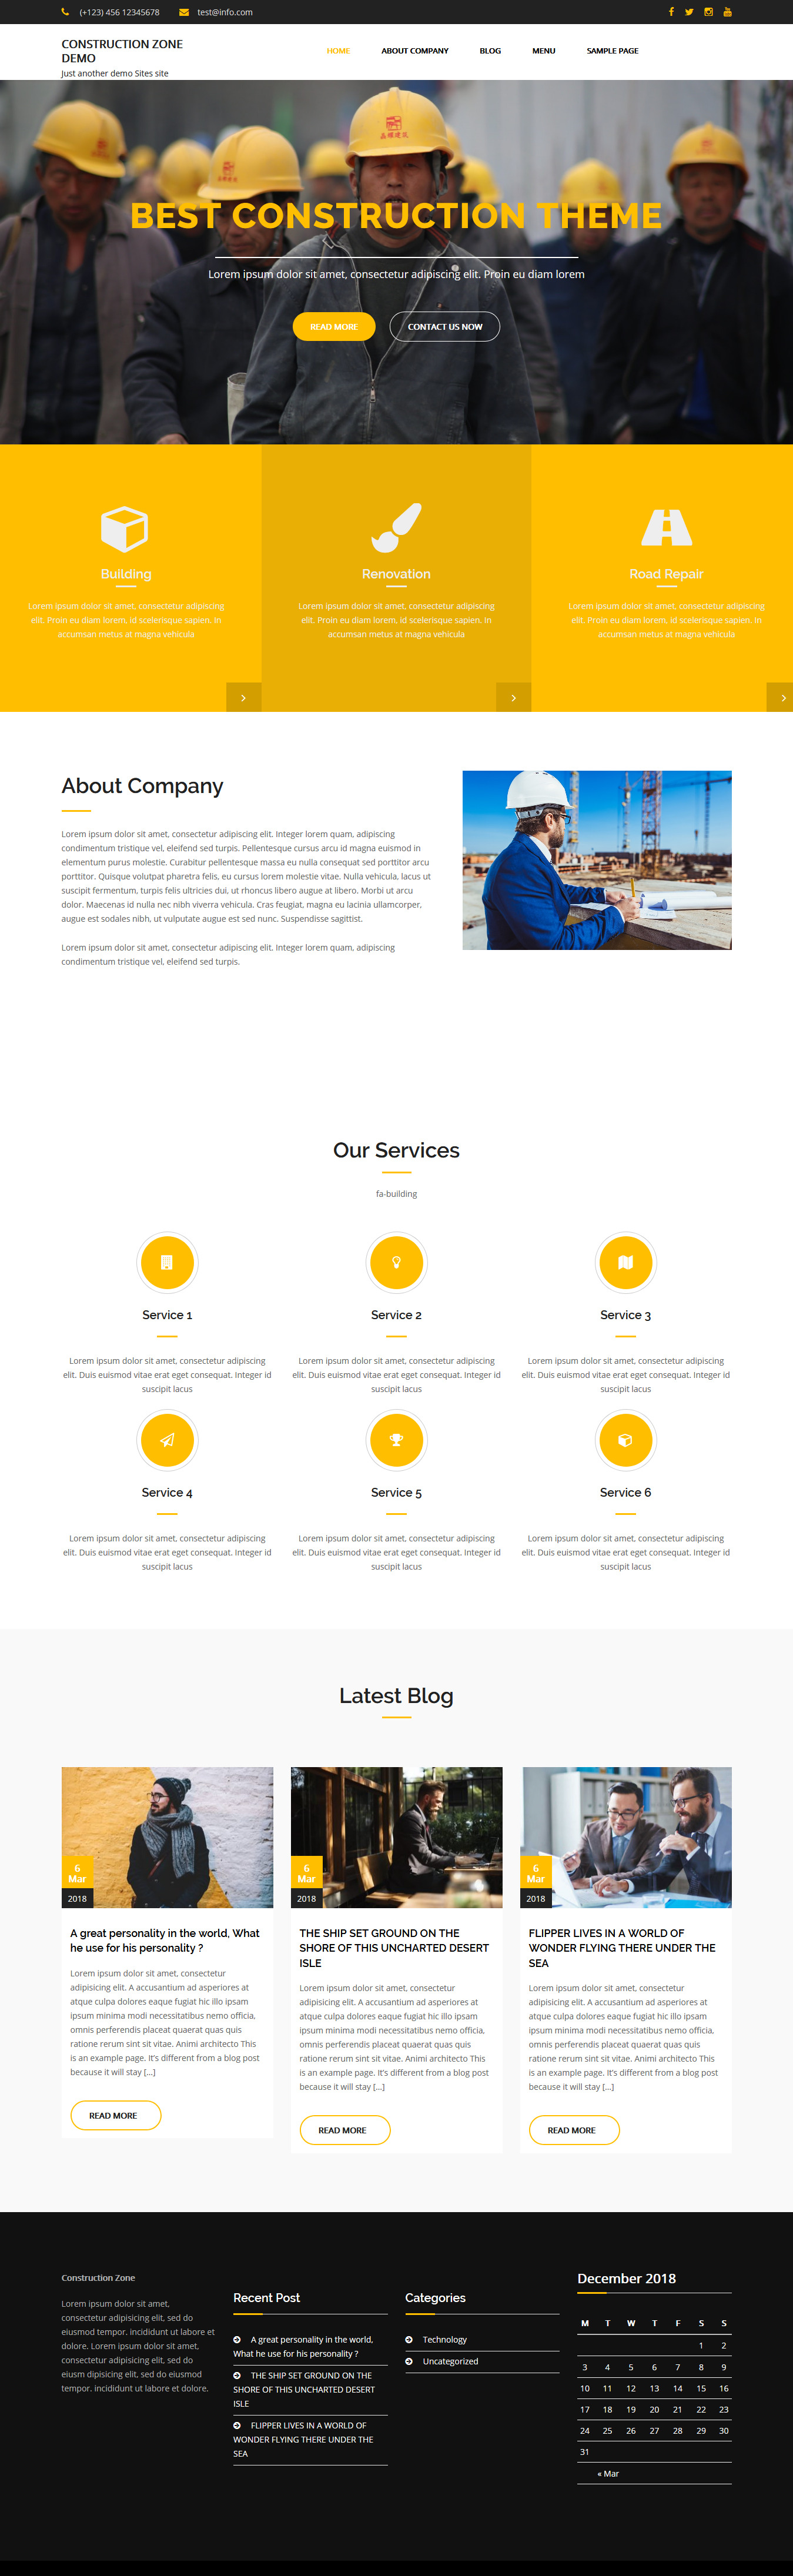 construction zone best free architecture wordpress theme - 10+ Best Free Architecture WordPress Themes